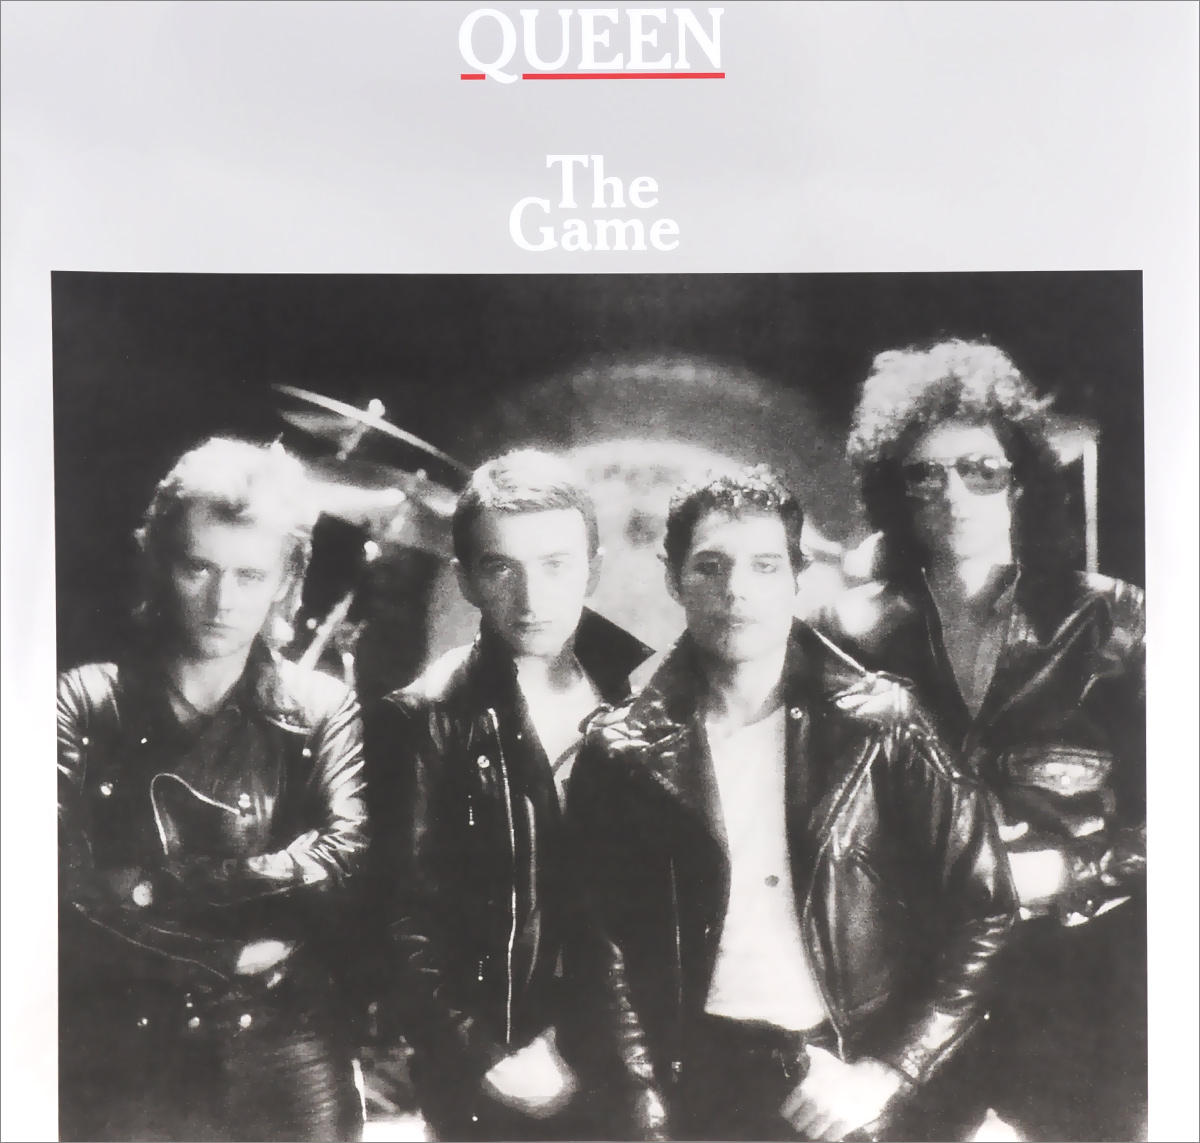 Queen Queen. The Game (LP) queen queen forever limited edition 5 lp